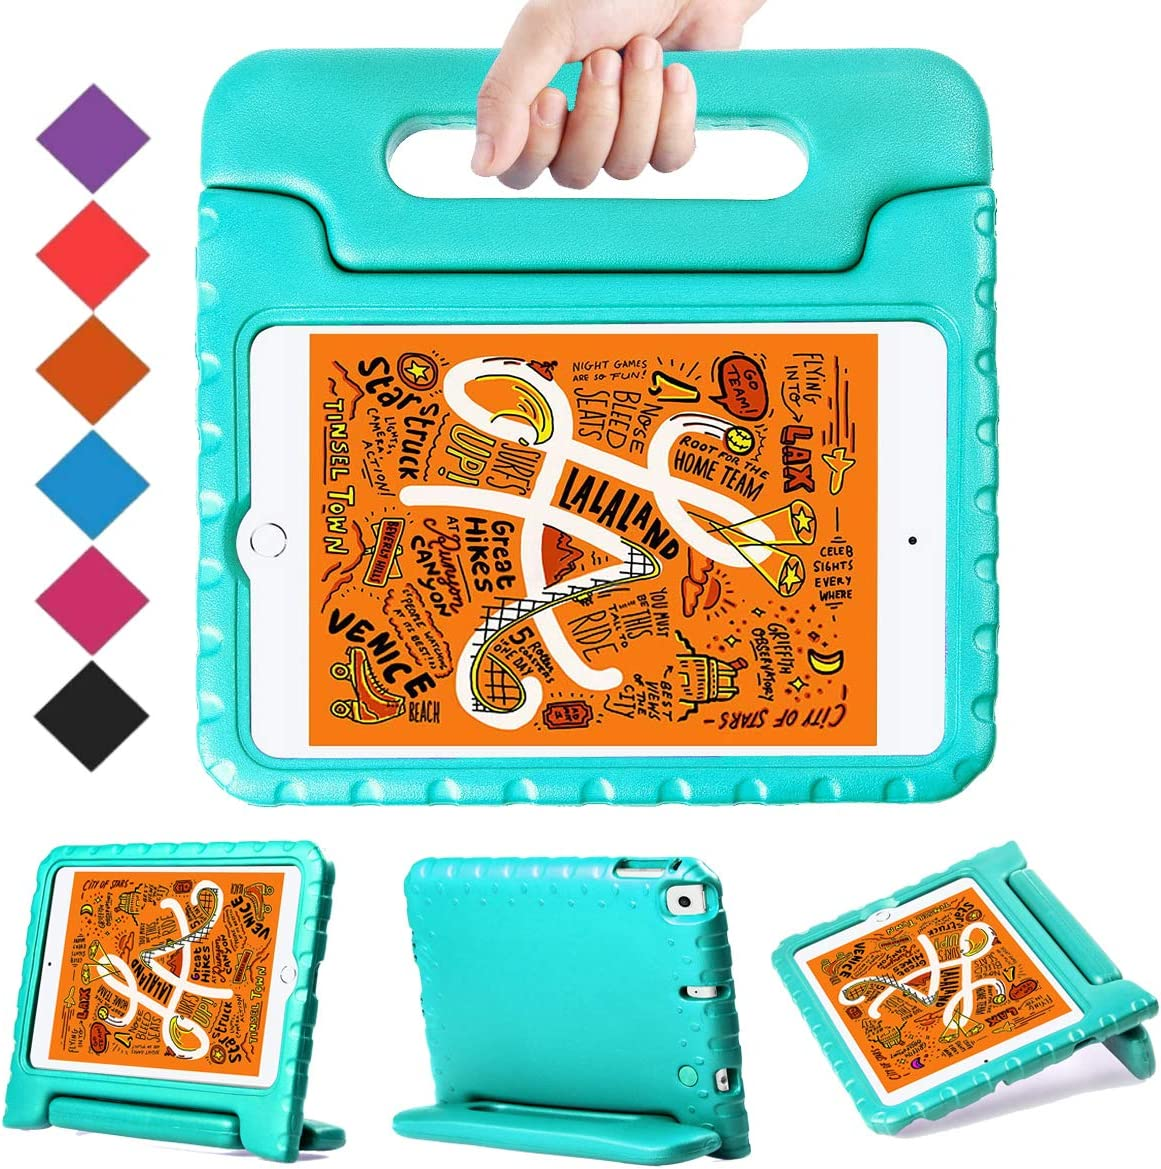 BMOUO Kids Case for New iPad Mini 5 2019 /iPad Mini 4 2015 - Light Weight Shockproof Protective Convertible Handle Stand Case Cover for iPad Mini 5th Generation 7.9